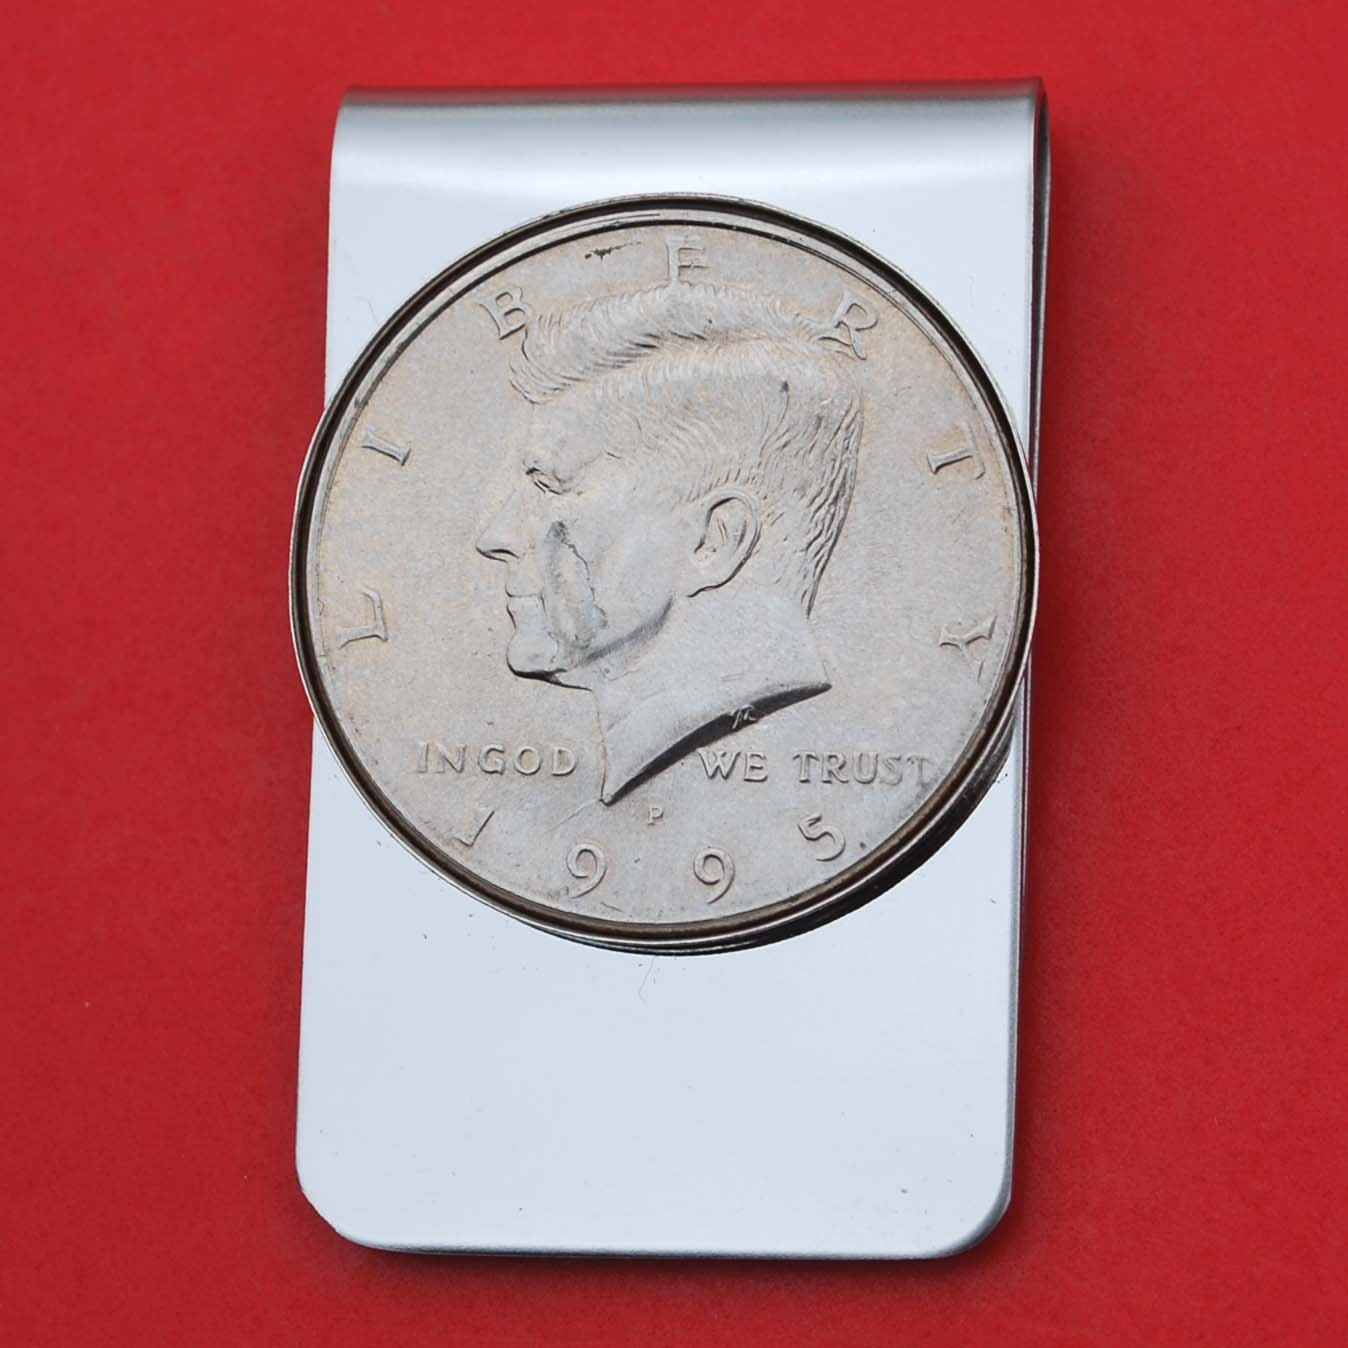 US 1995 Kennedy Half Dollar BU Uncirculated Coin Stainless Steel Money Clip NEW - Silver Plated Coin Bezel